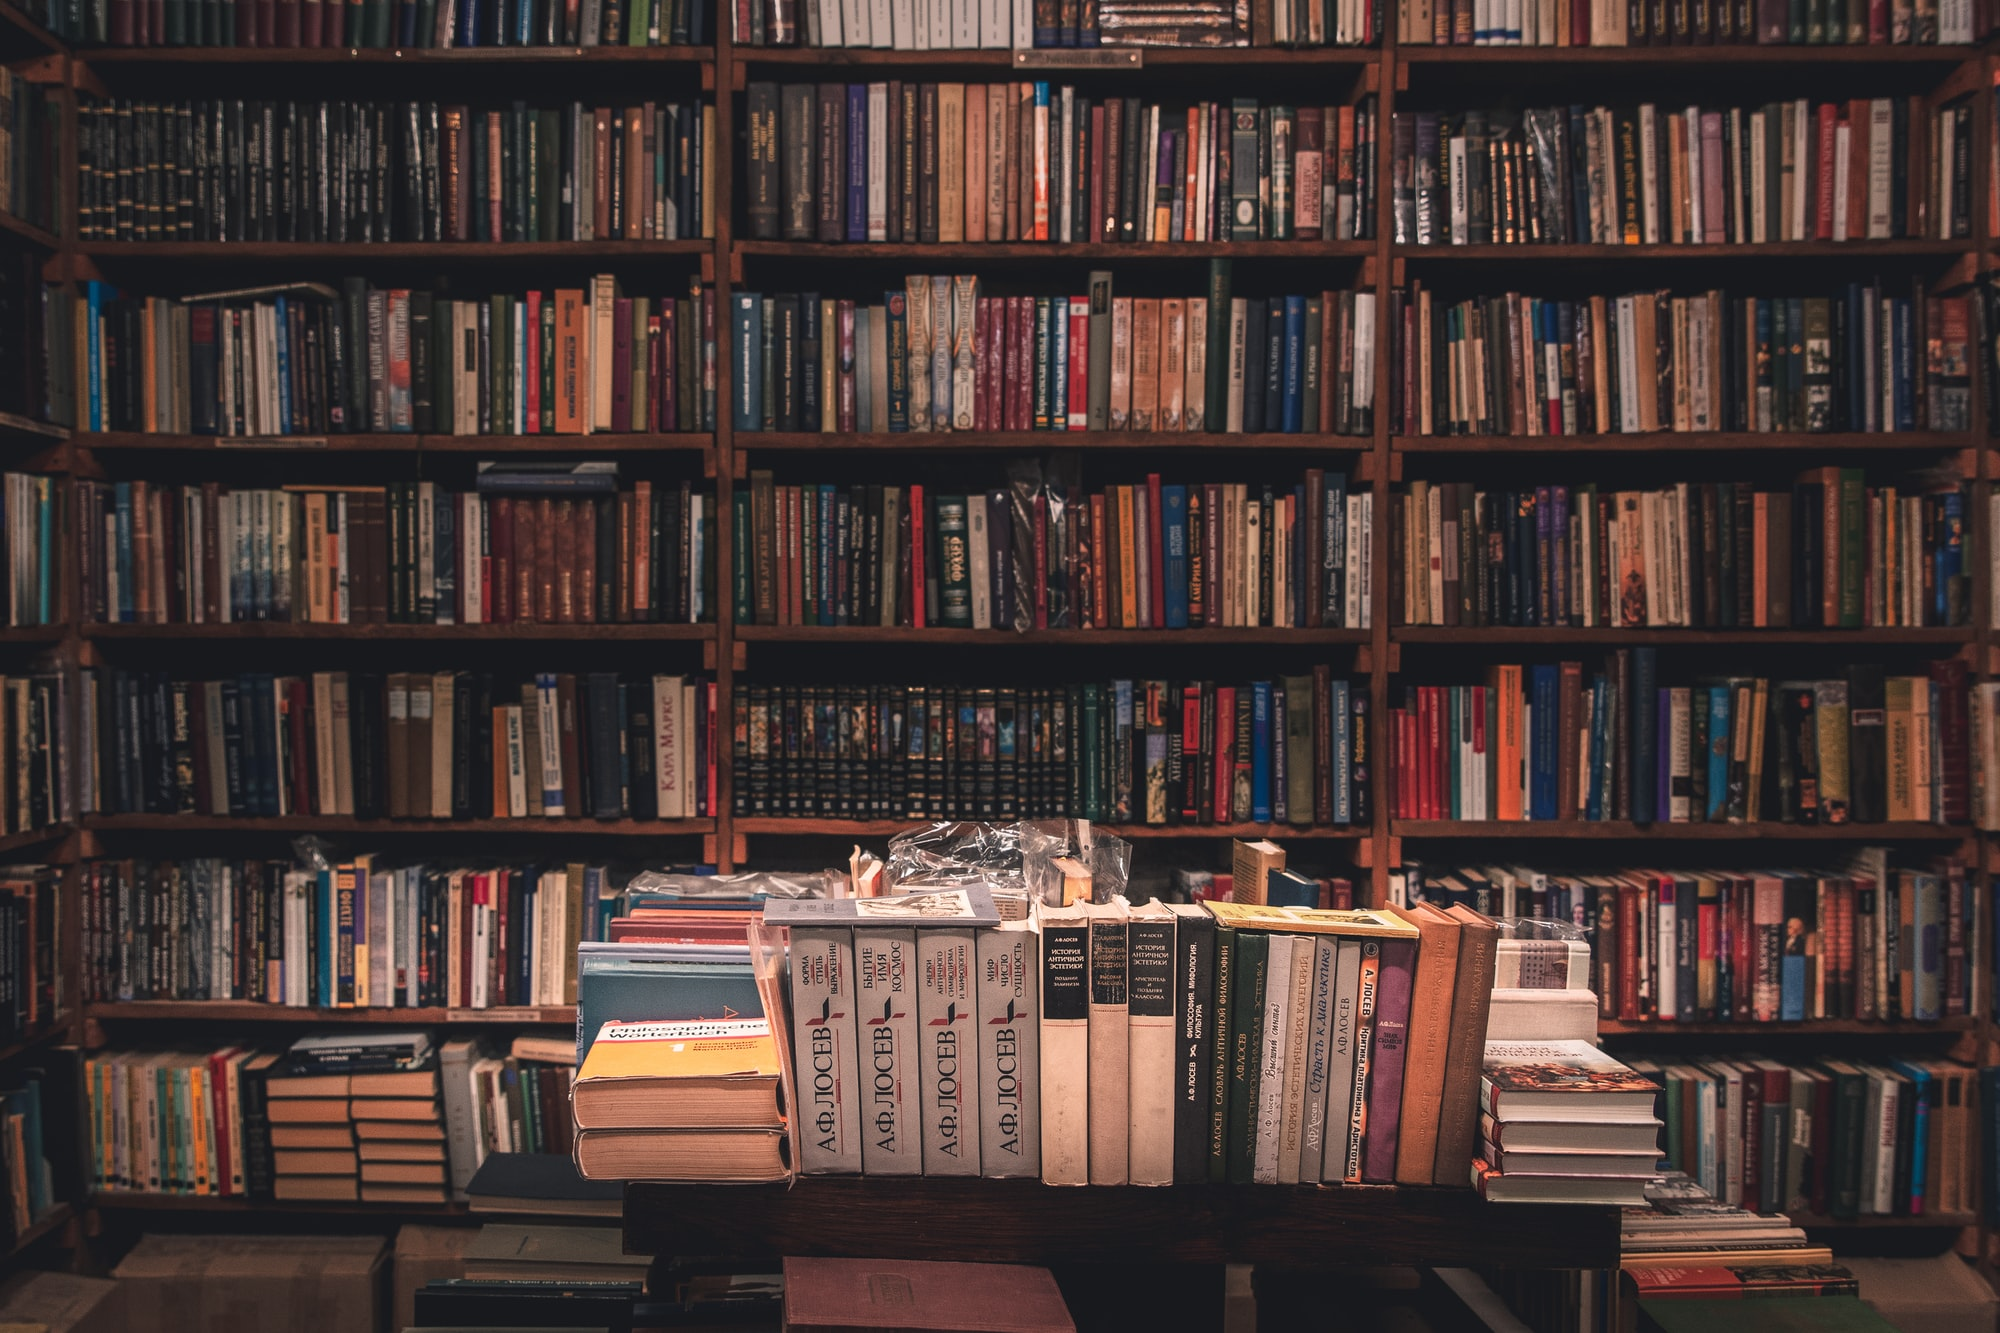 Books we believe should be on your bookshelf (hope you read them too!)